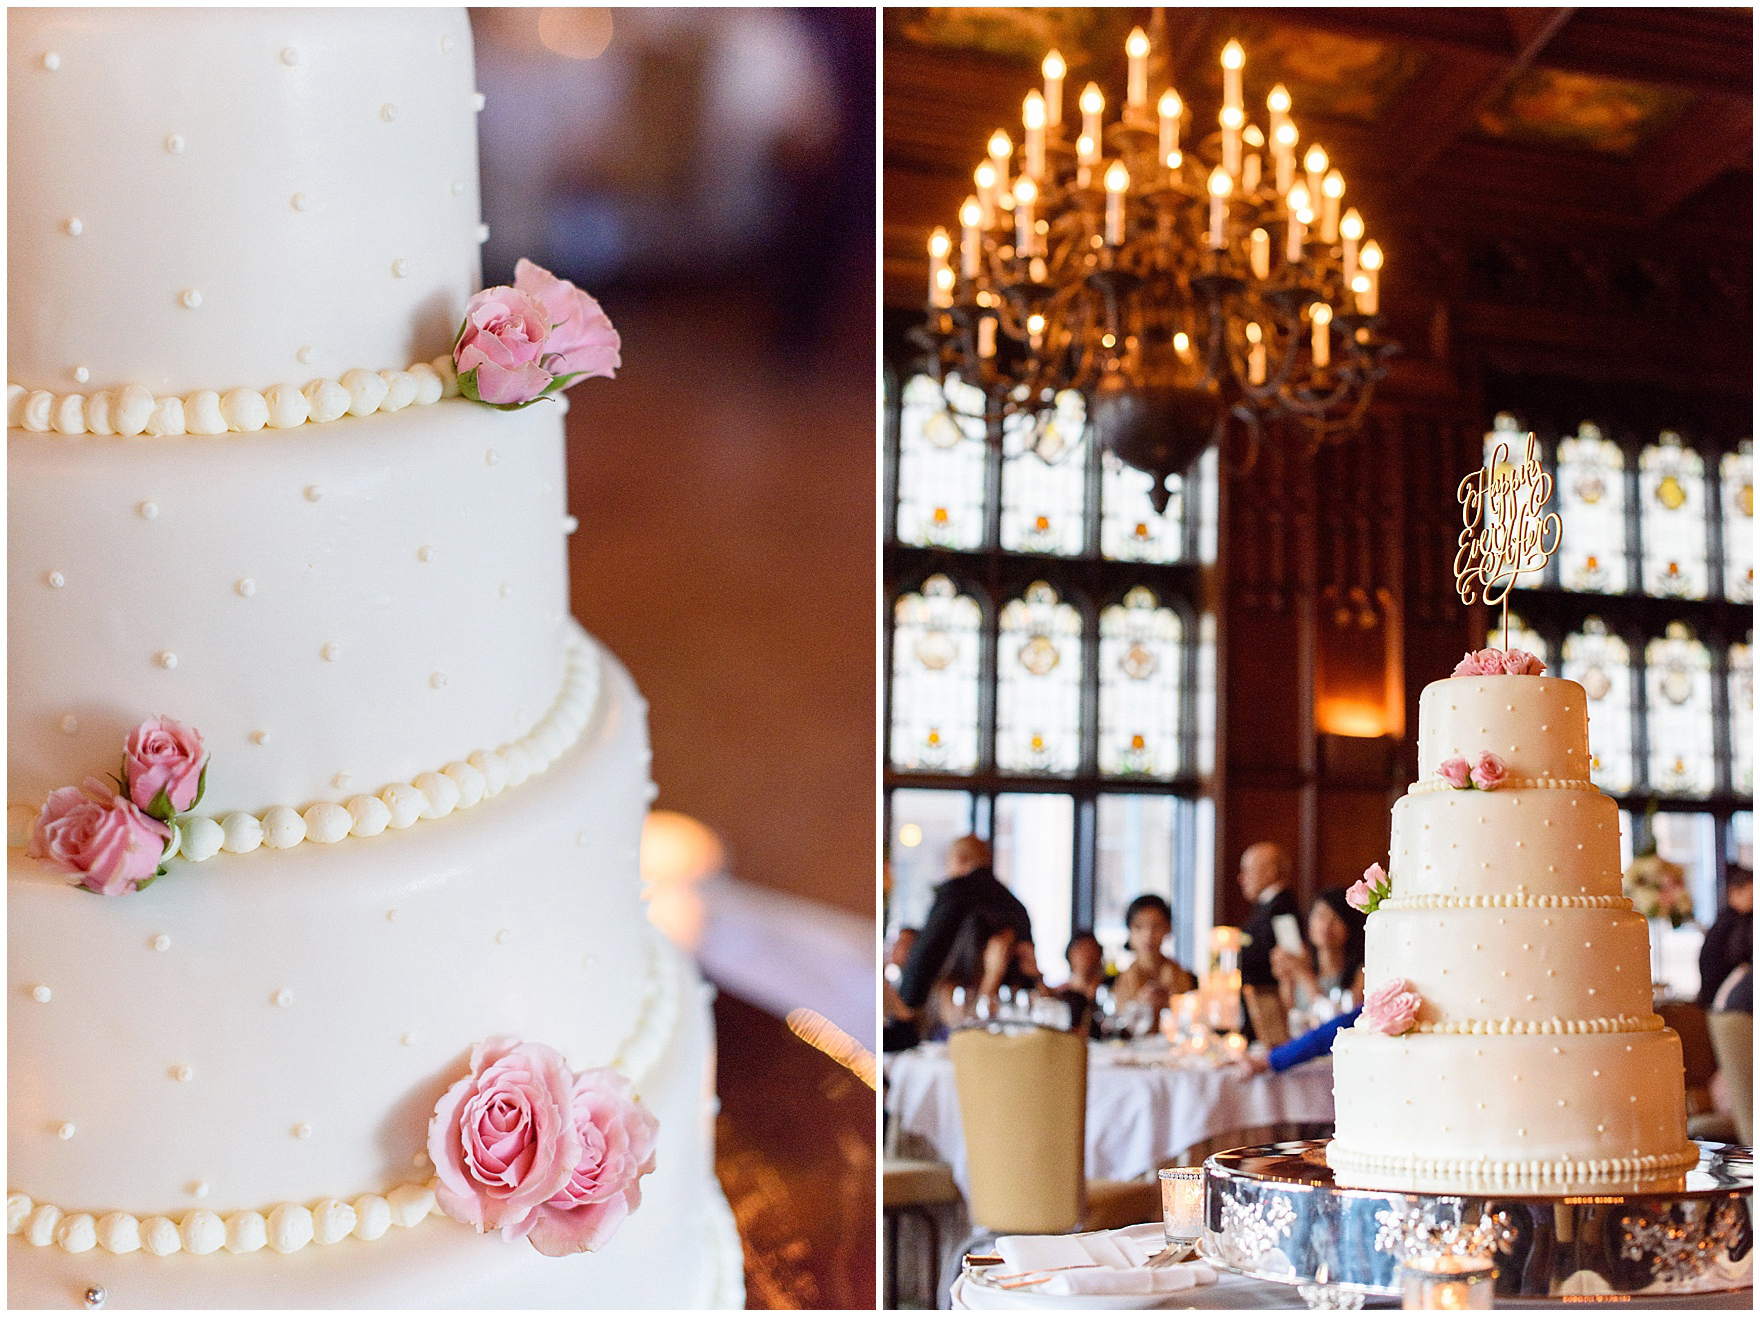 Details of a wedding cake with pink roses and a gold cake topper beneath the chandelier in the Michigan Room set up for a dinner reception for a University Club of Chicago wedding.